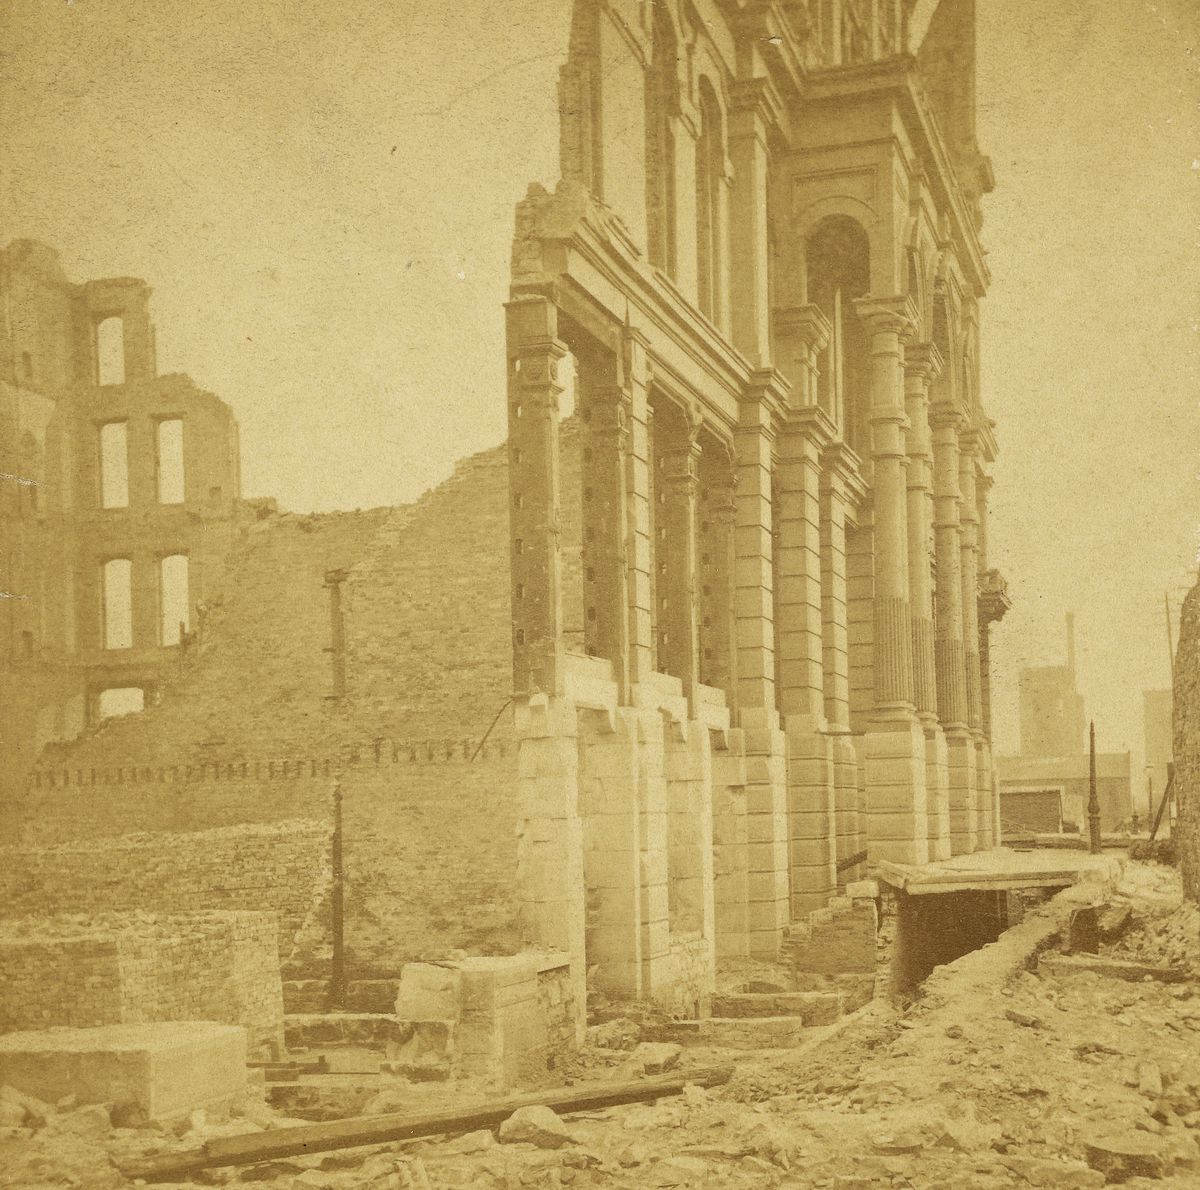 The remains of the Grand Pacific Hotel, on the block bounded by Quincy, Clark, Jackson and LaSalle. The hotel was rebuilt after the fire.